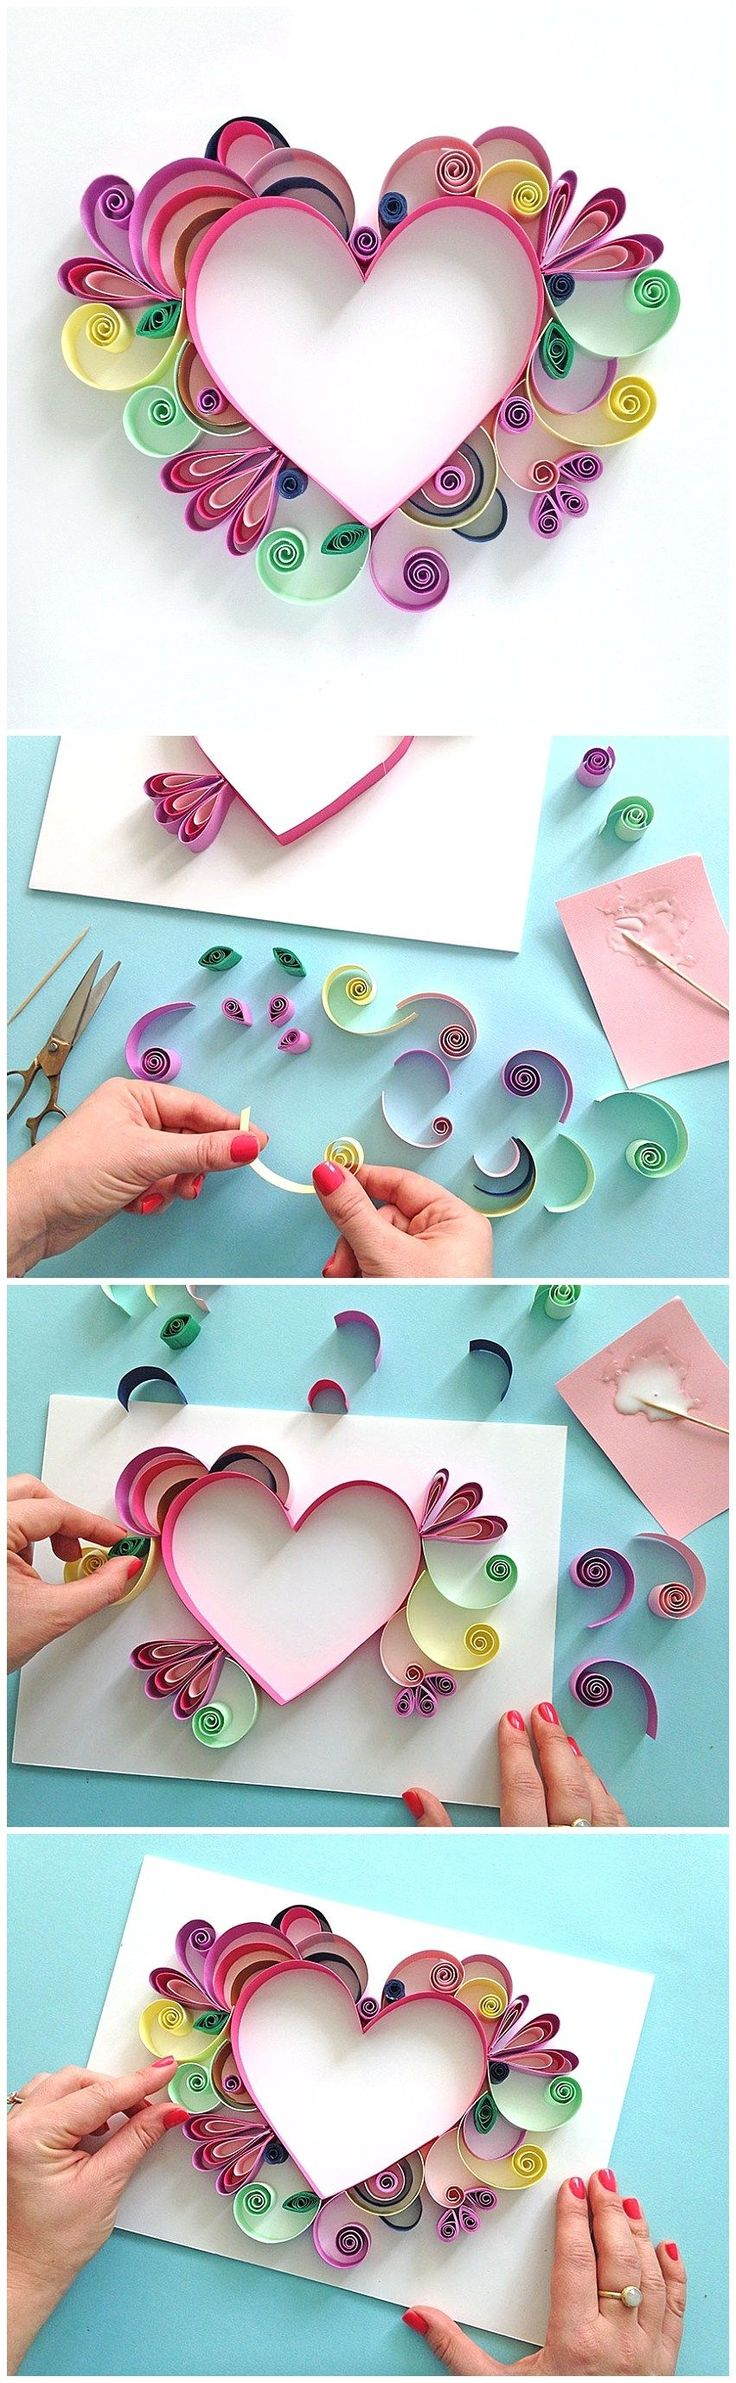 The BEST Easy DIY Mother's Day Gifts and Treats Ideas – Holiday Craft Activity Projects, Free Printables and Favorite Brunch Desserts Recipes for Moms and Grandmas